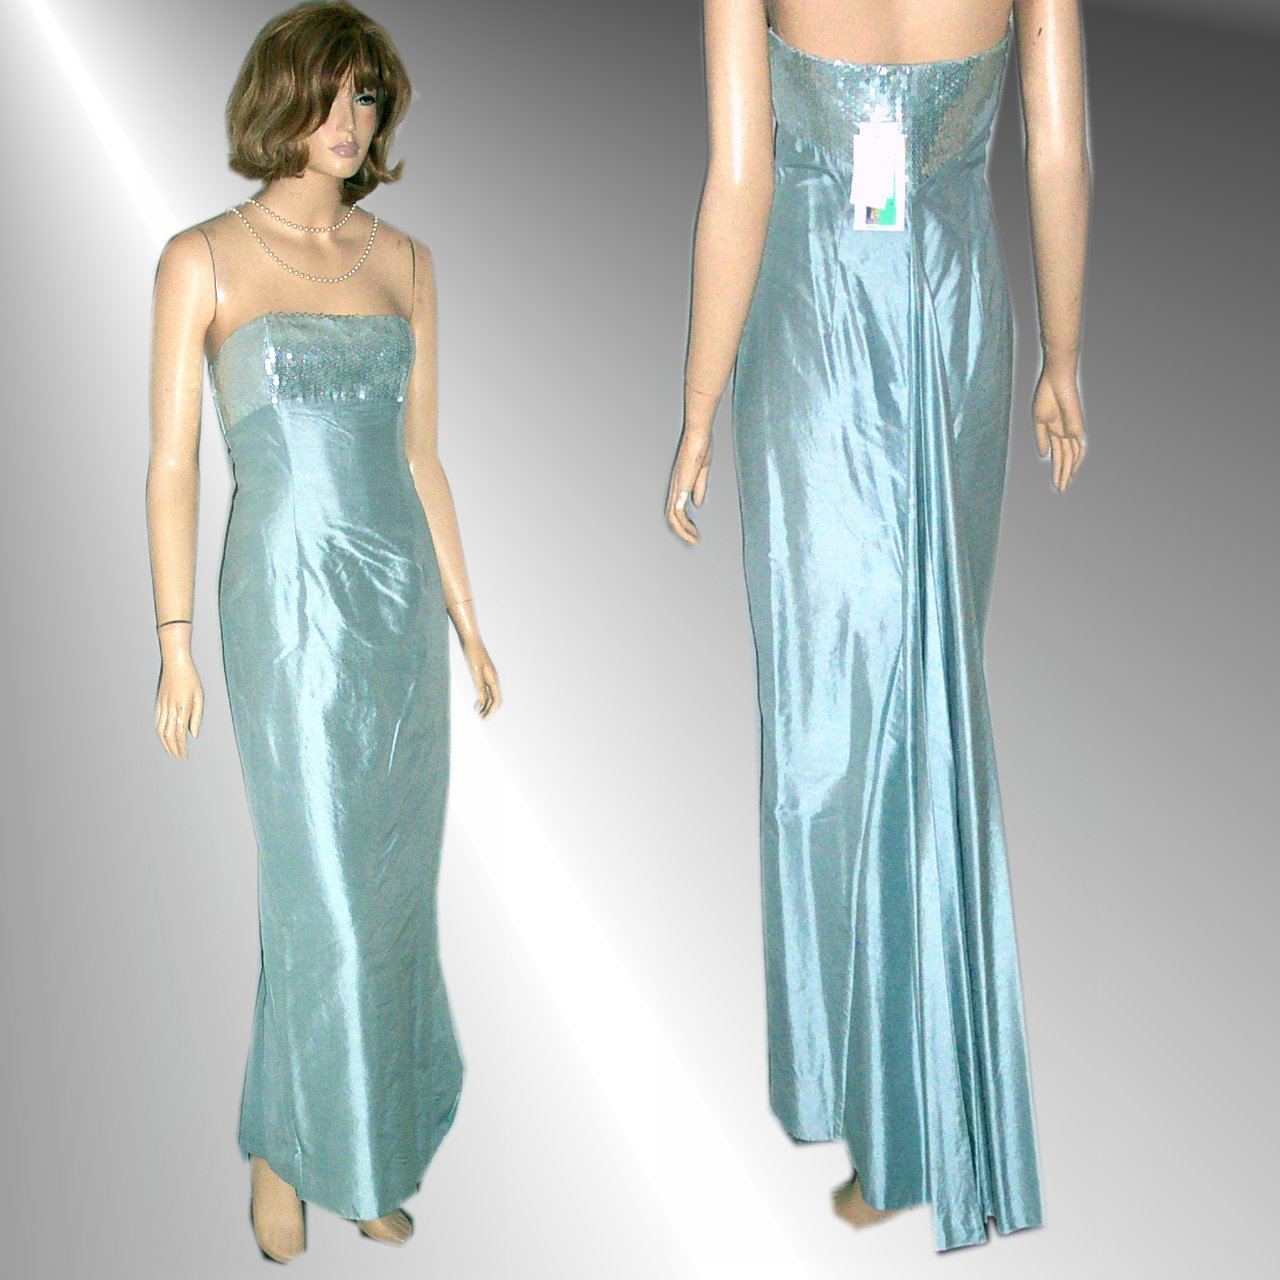 JESSICA McCLINTOCK Shantung Silk Strapless Fishtail Gown in Ice Blue - Bust 32""